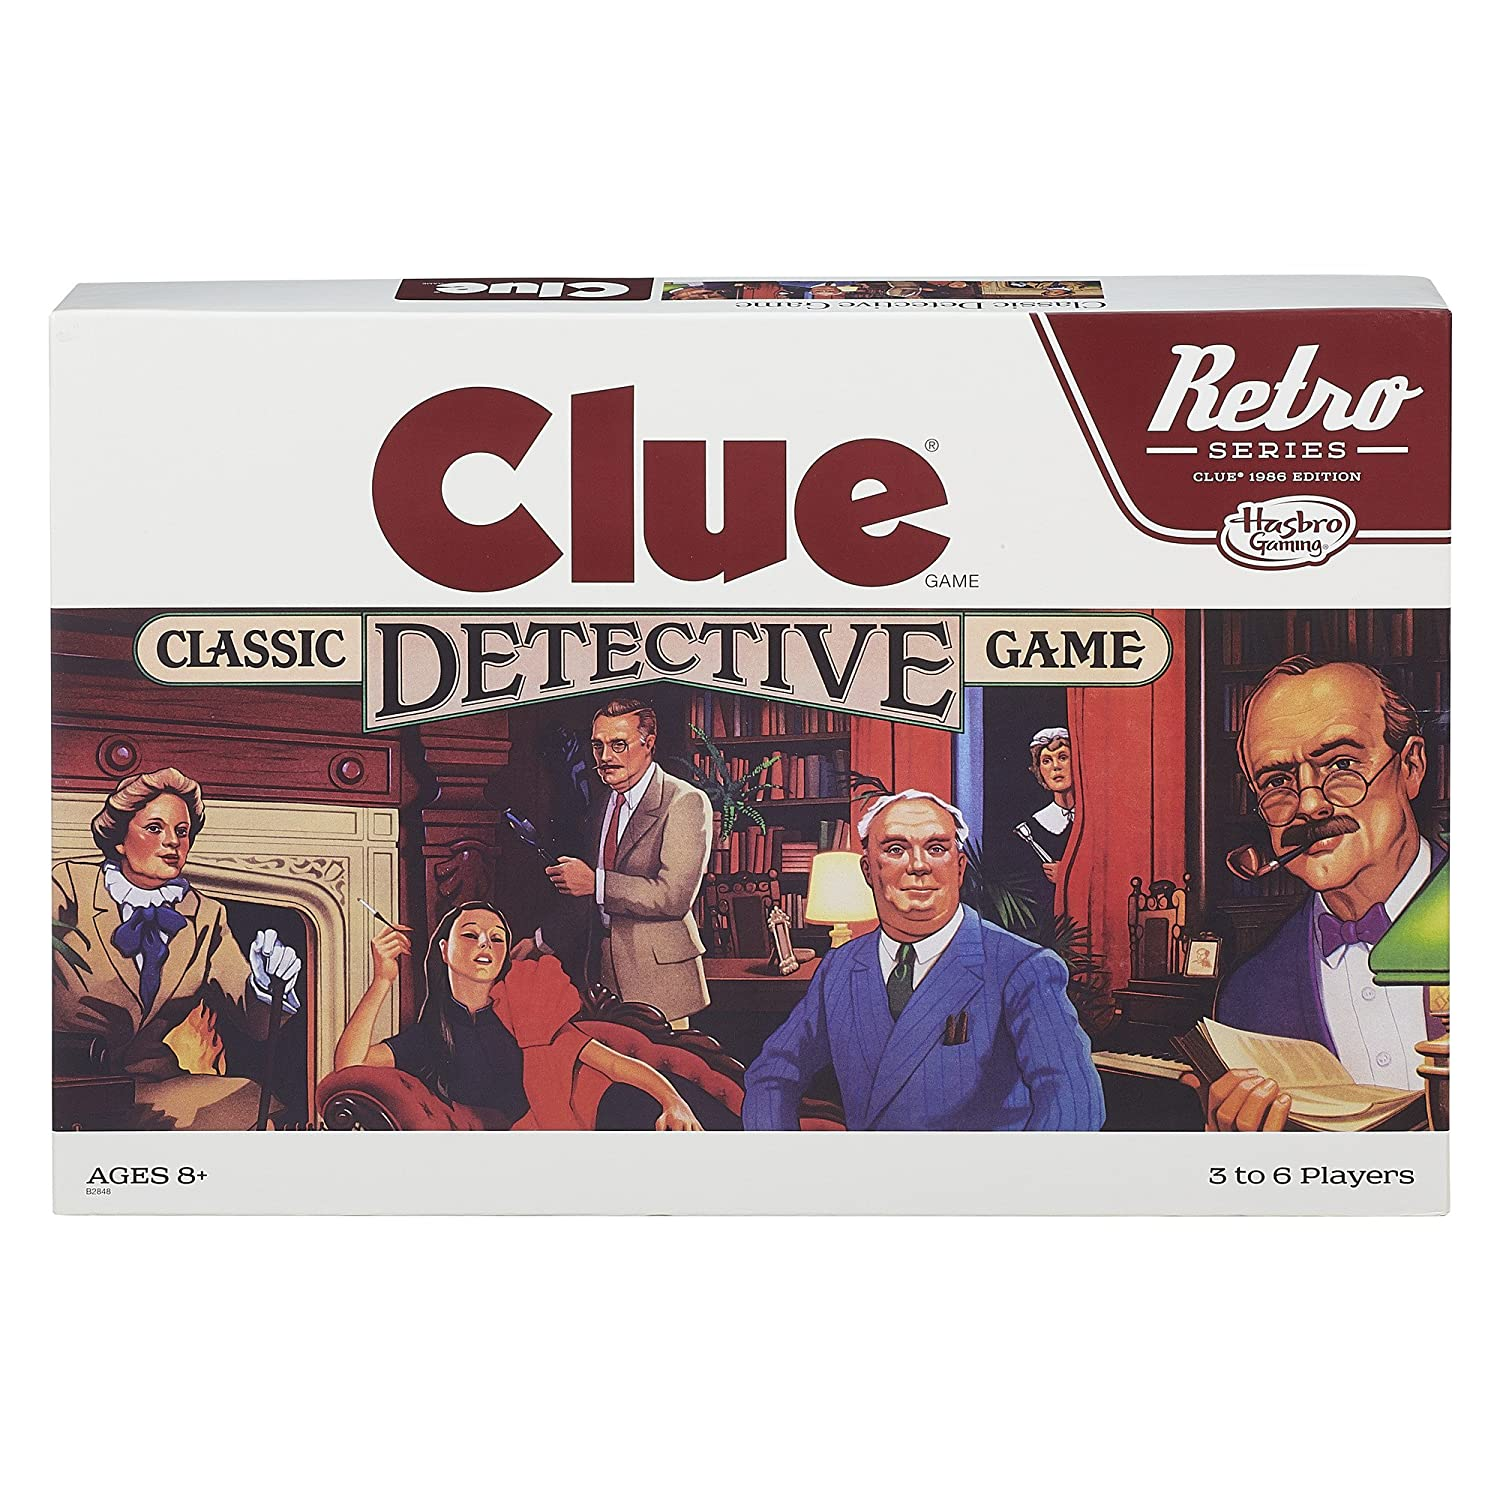 Retro Series Clue 1986 Edition Game Hasbro B2848